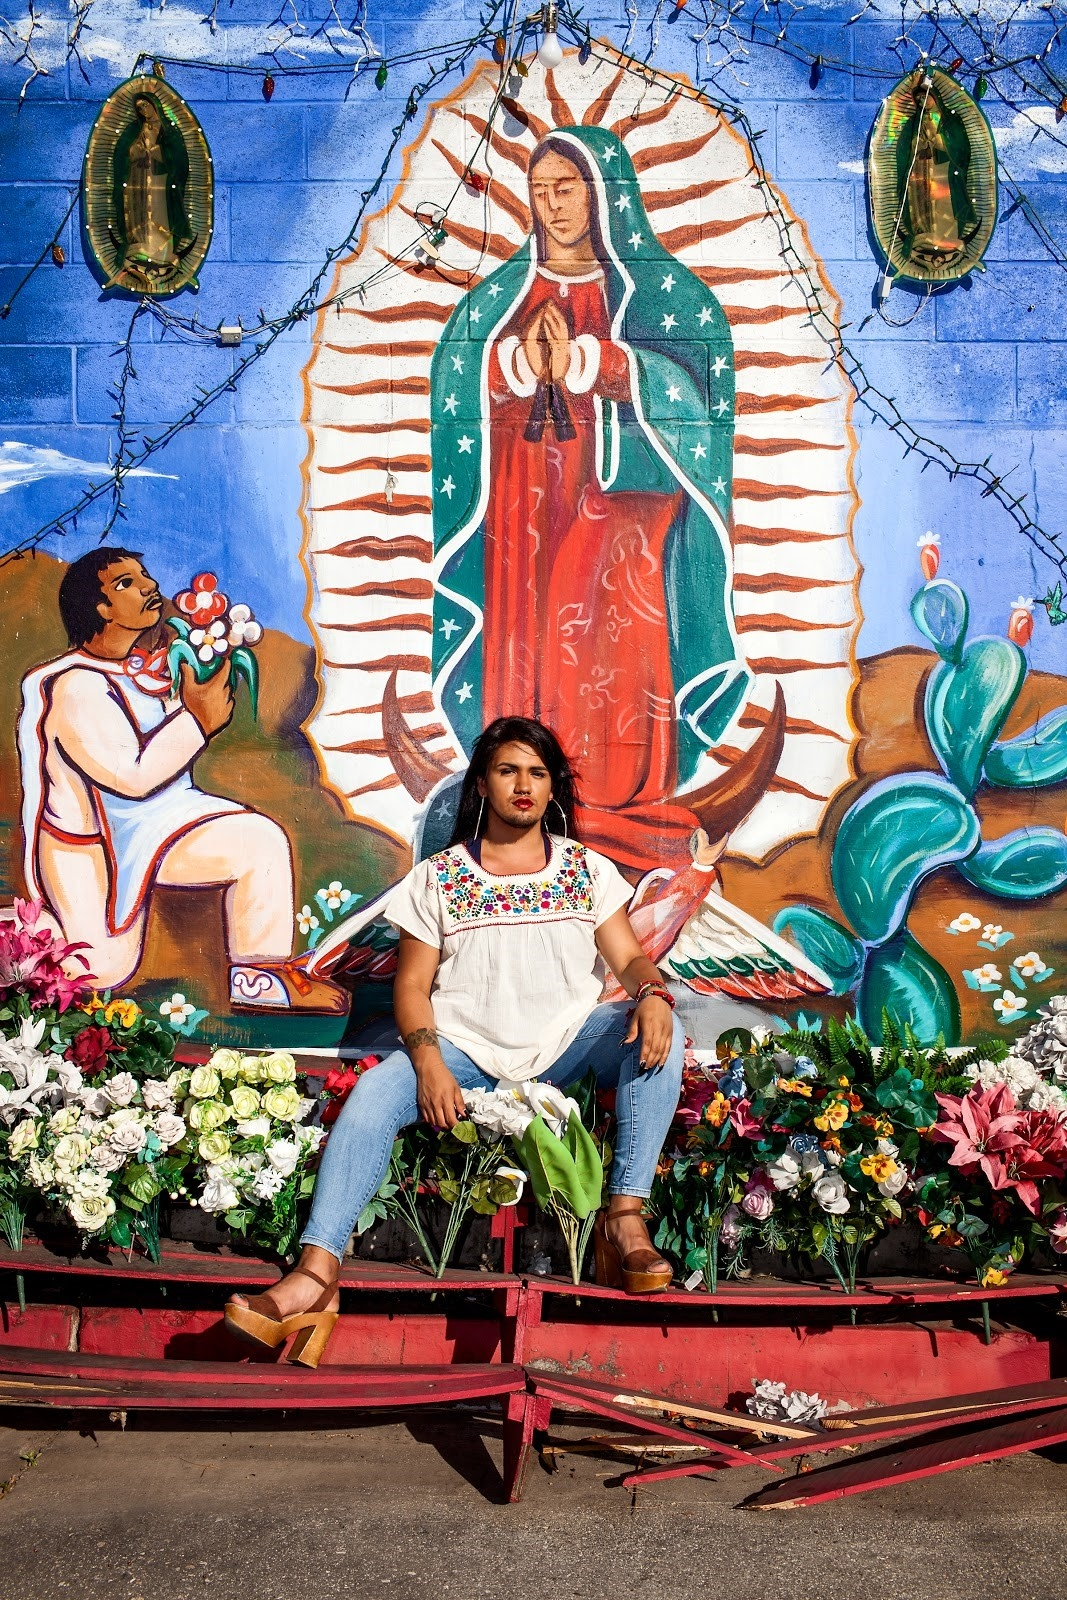 Image created by Eve Moreno in front of mural of the Virgen de Guadalupe appearing to Diego.